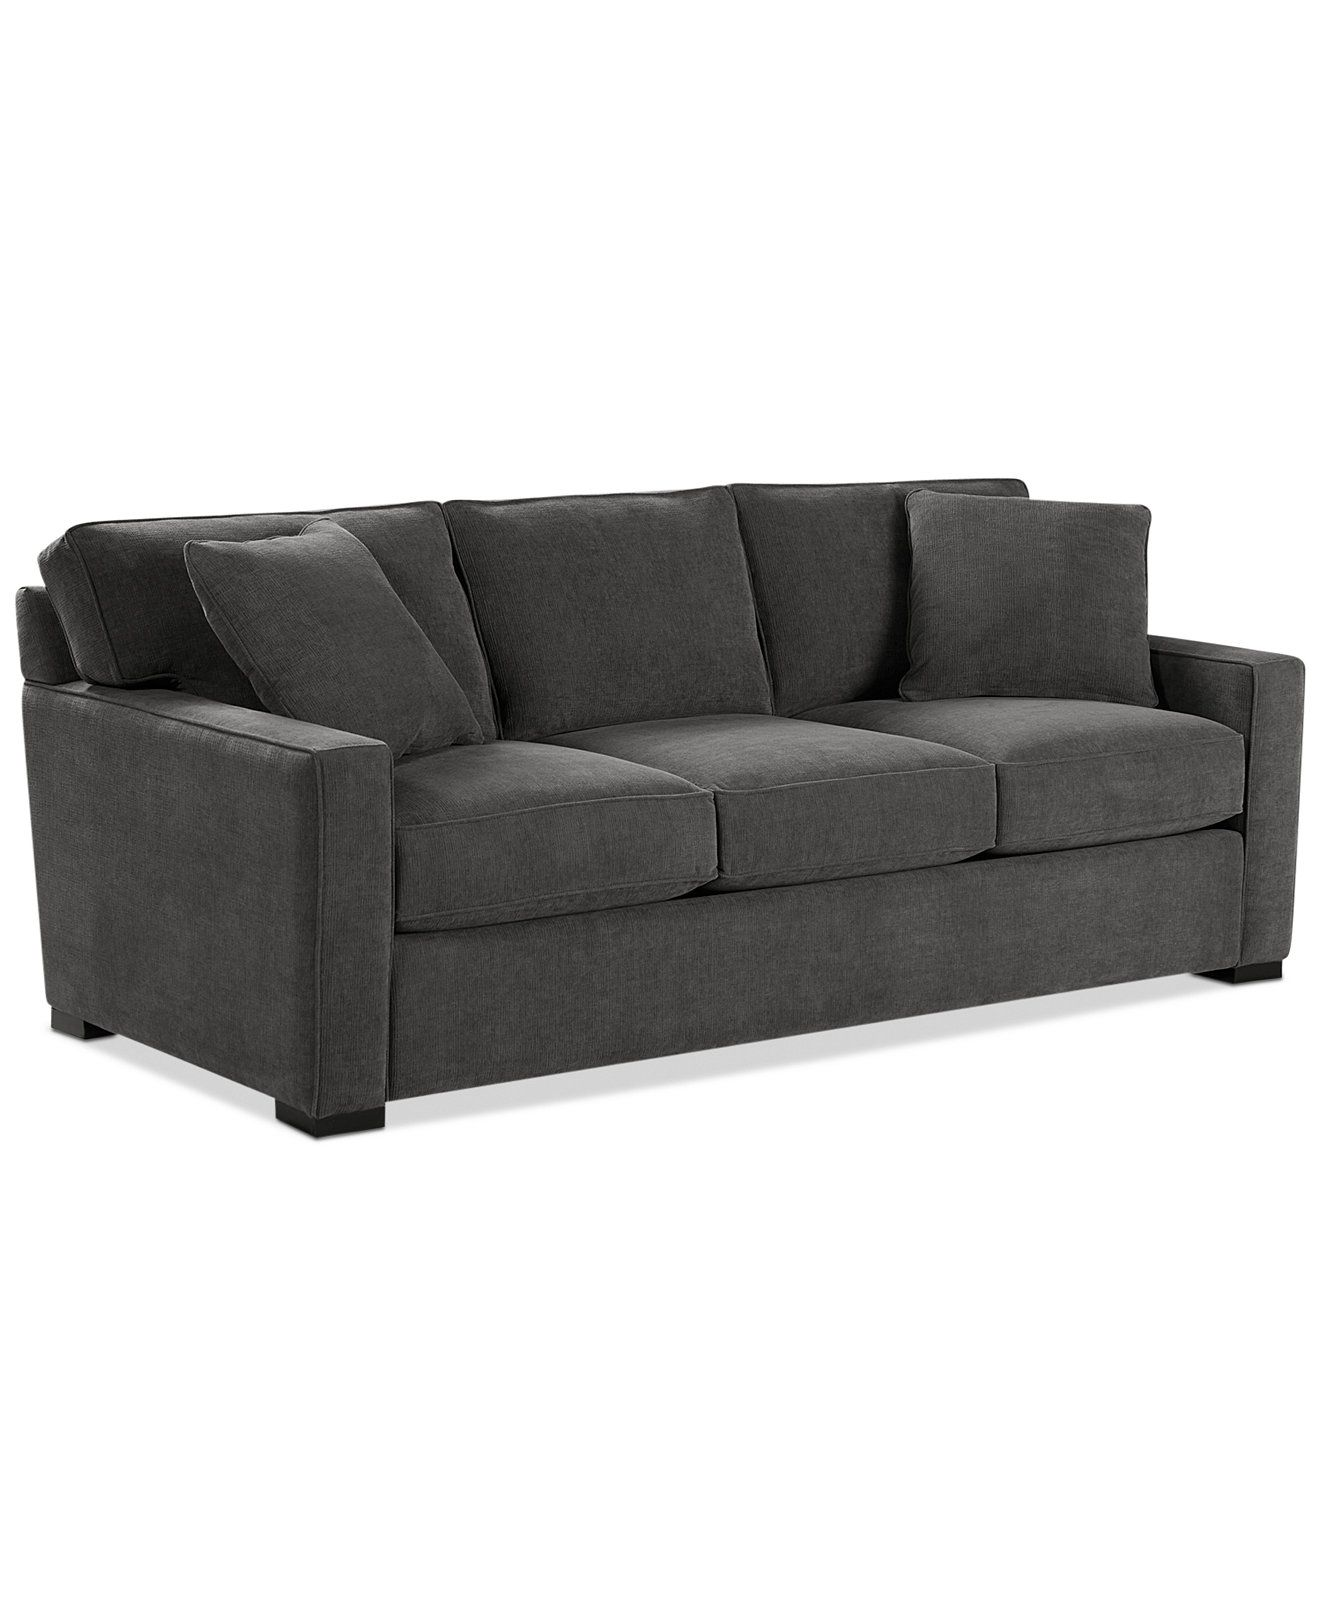 Macys Sleeper Sofa Remo Ii Fabric Full Sleeper Sofa Bed